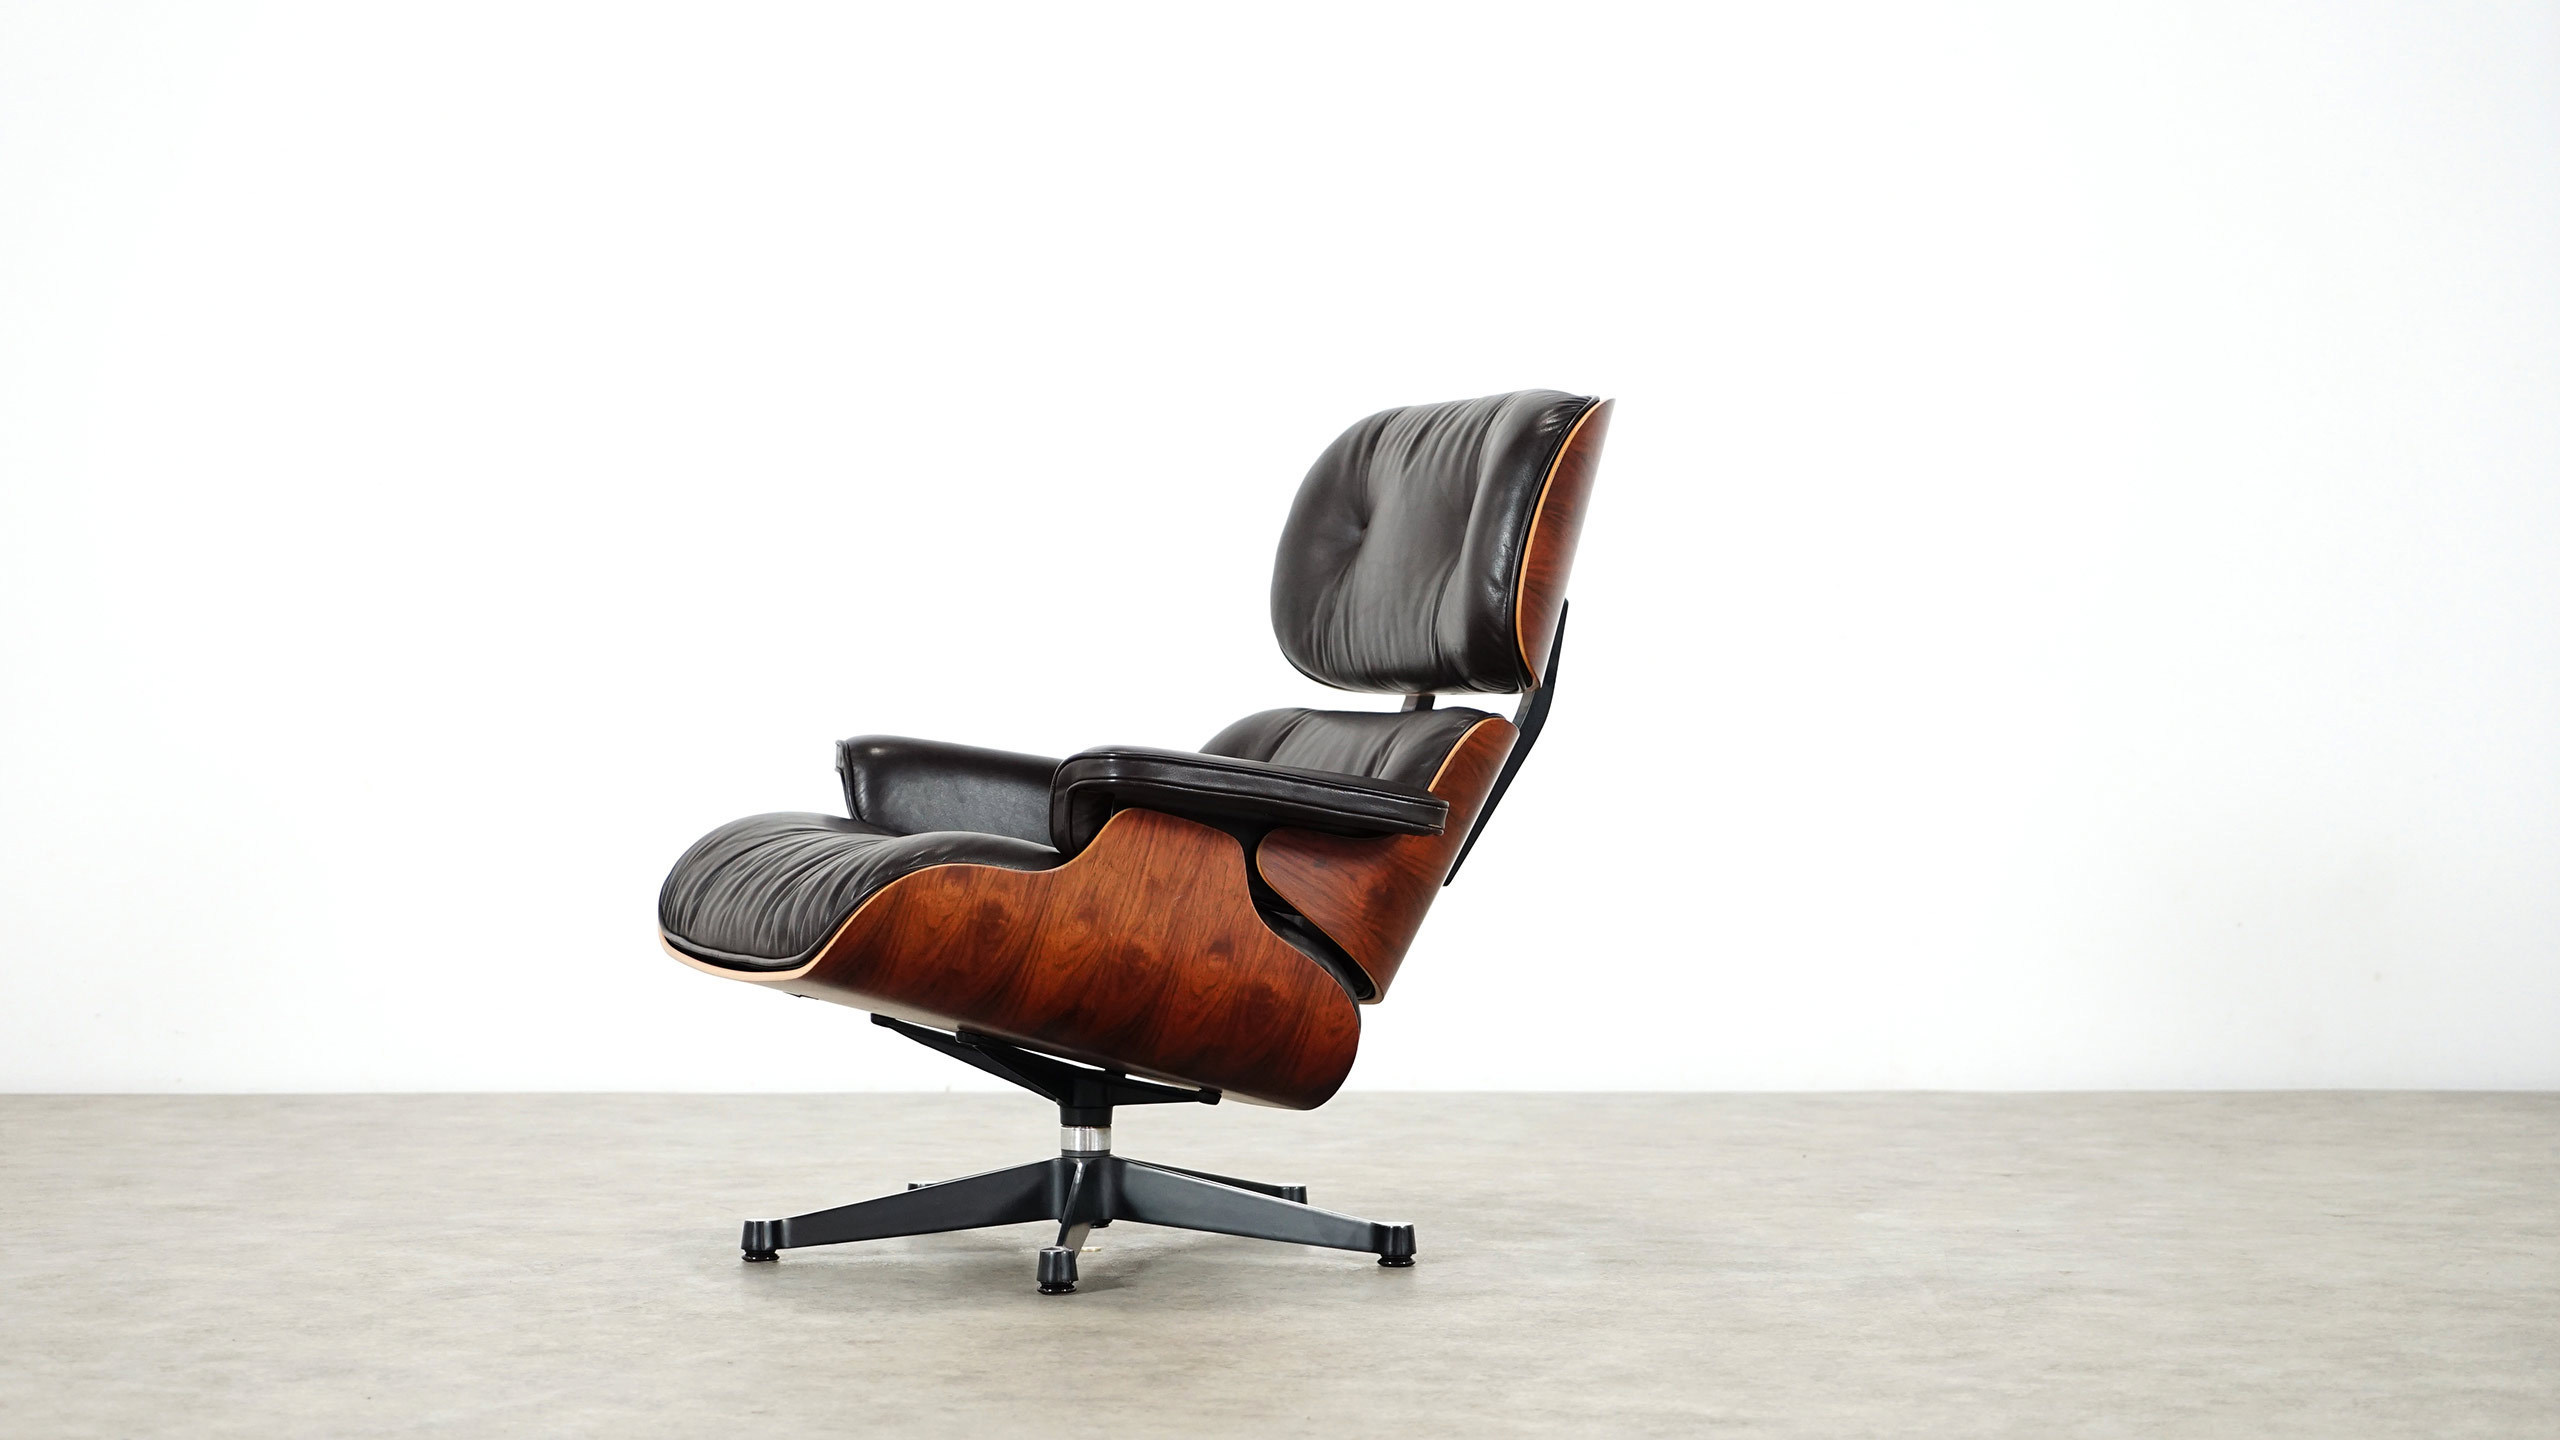 Vitra Chalres Eames : Charles eames lounge chair by herman miller vitra